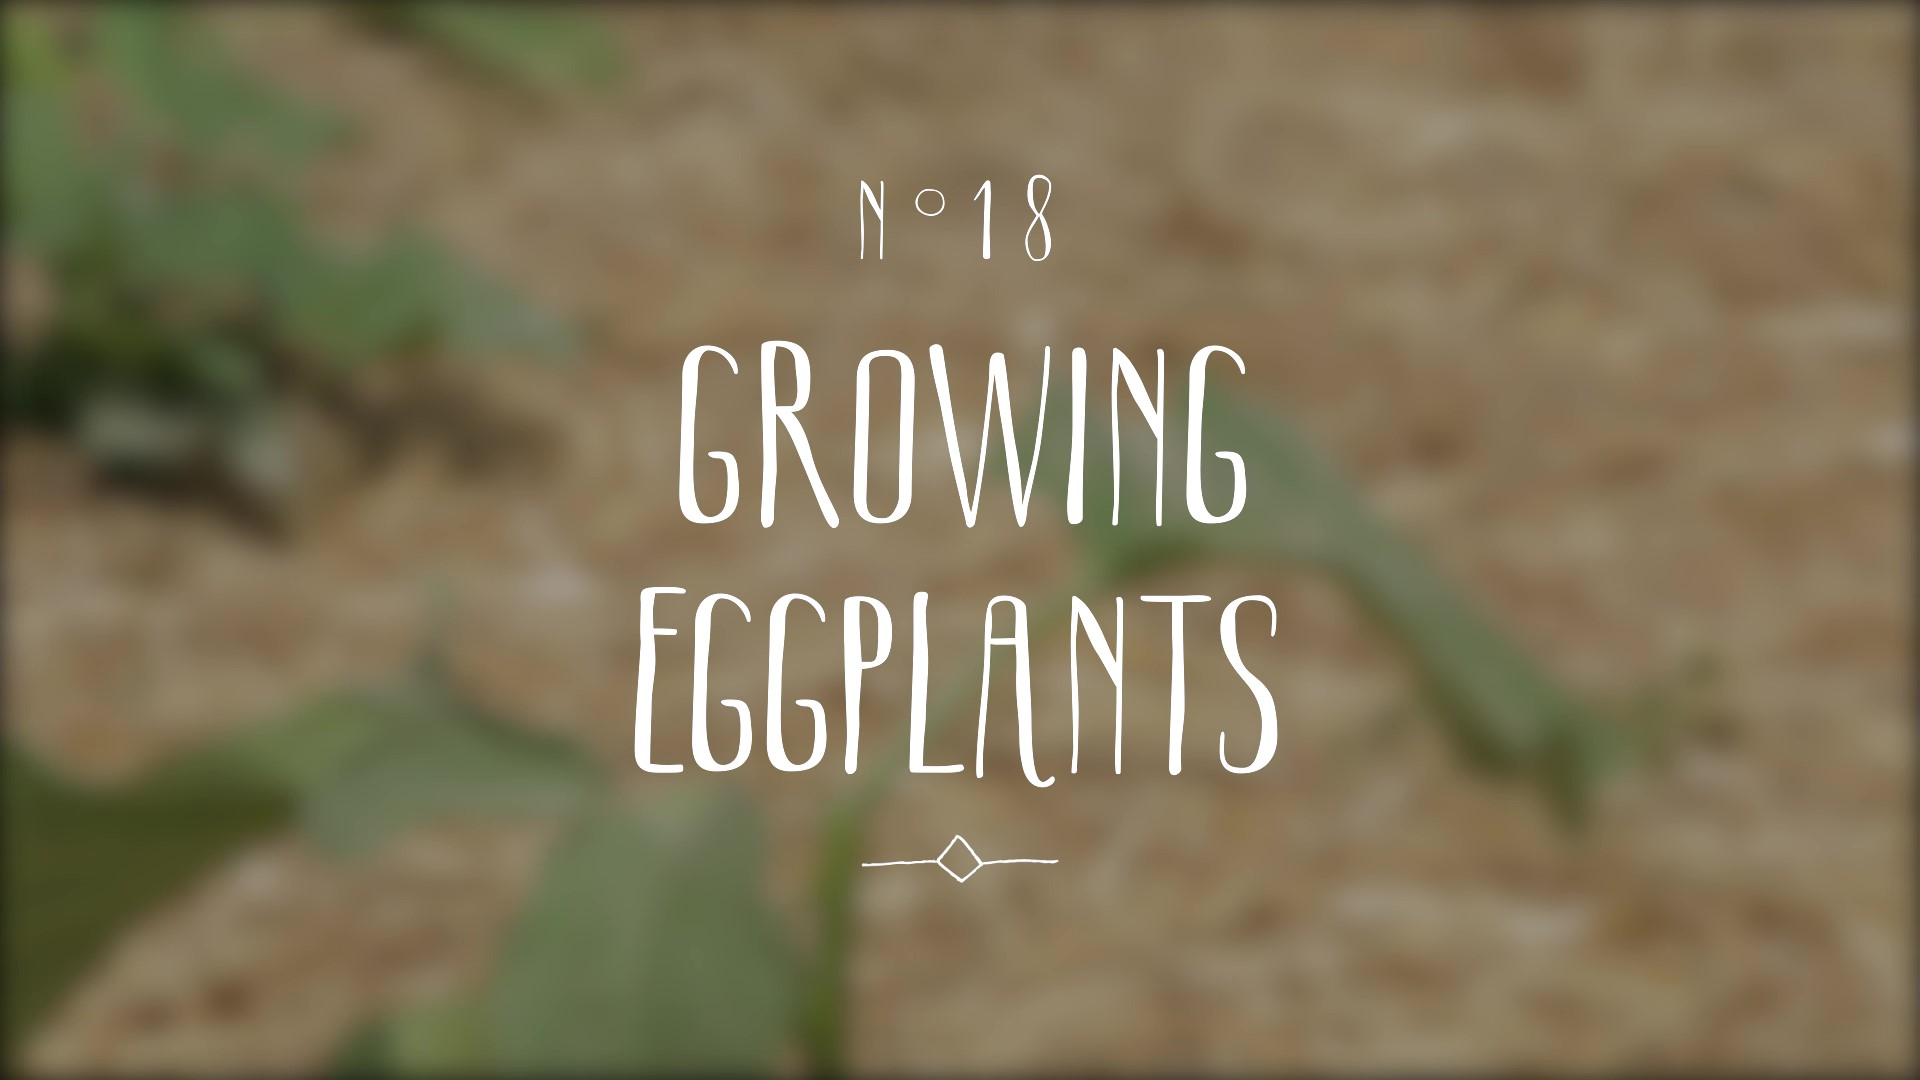 A video on growing eggplant